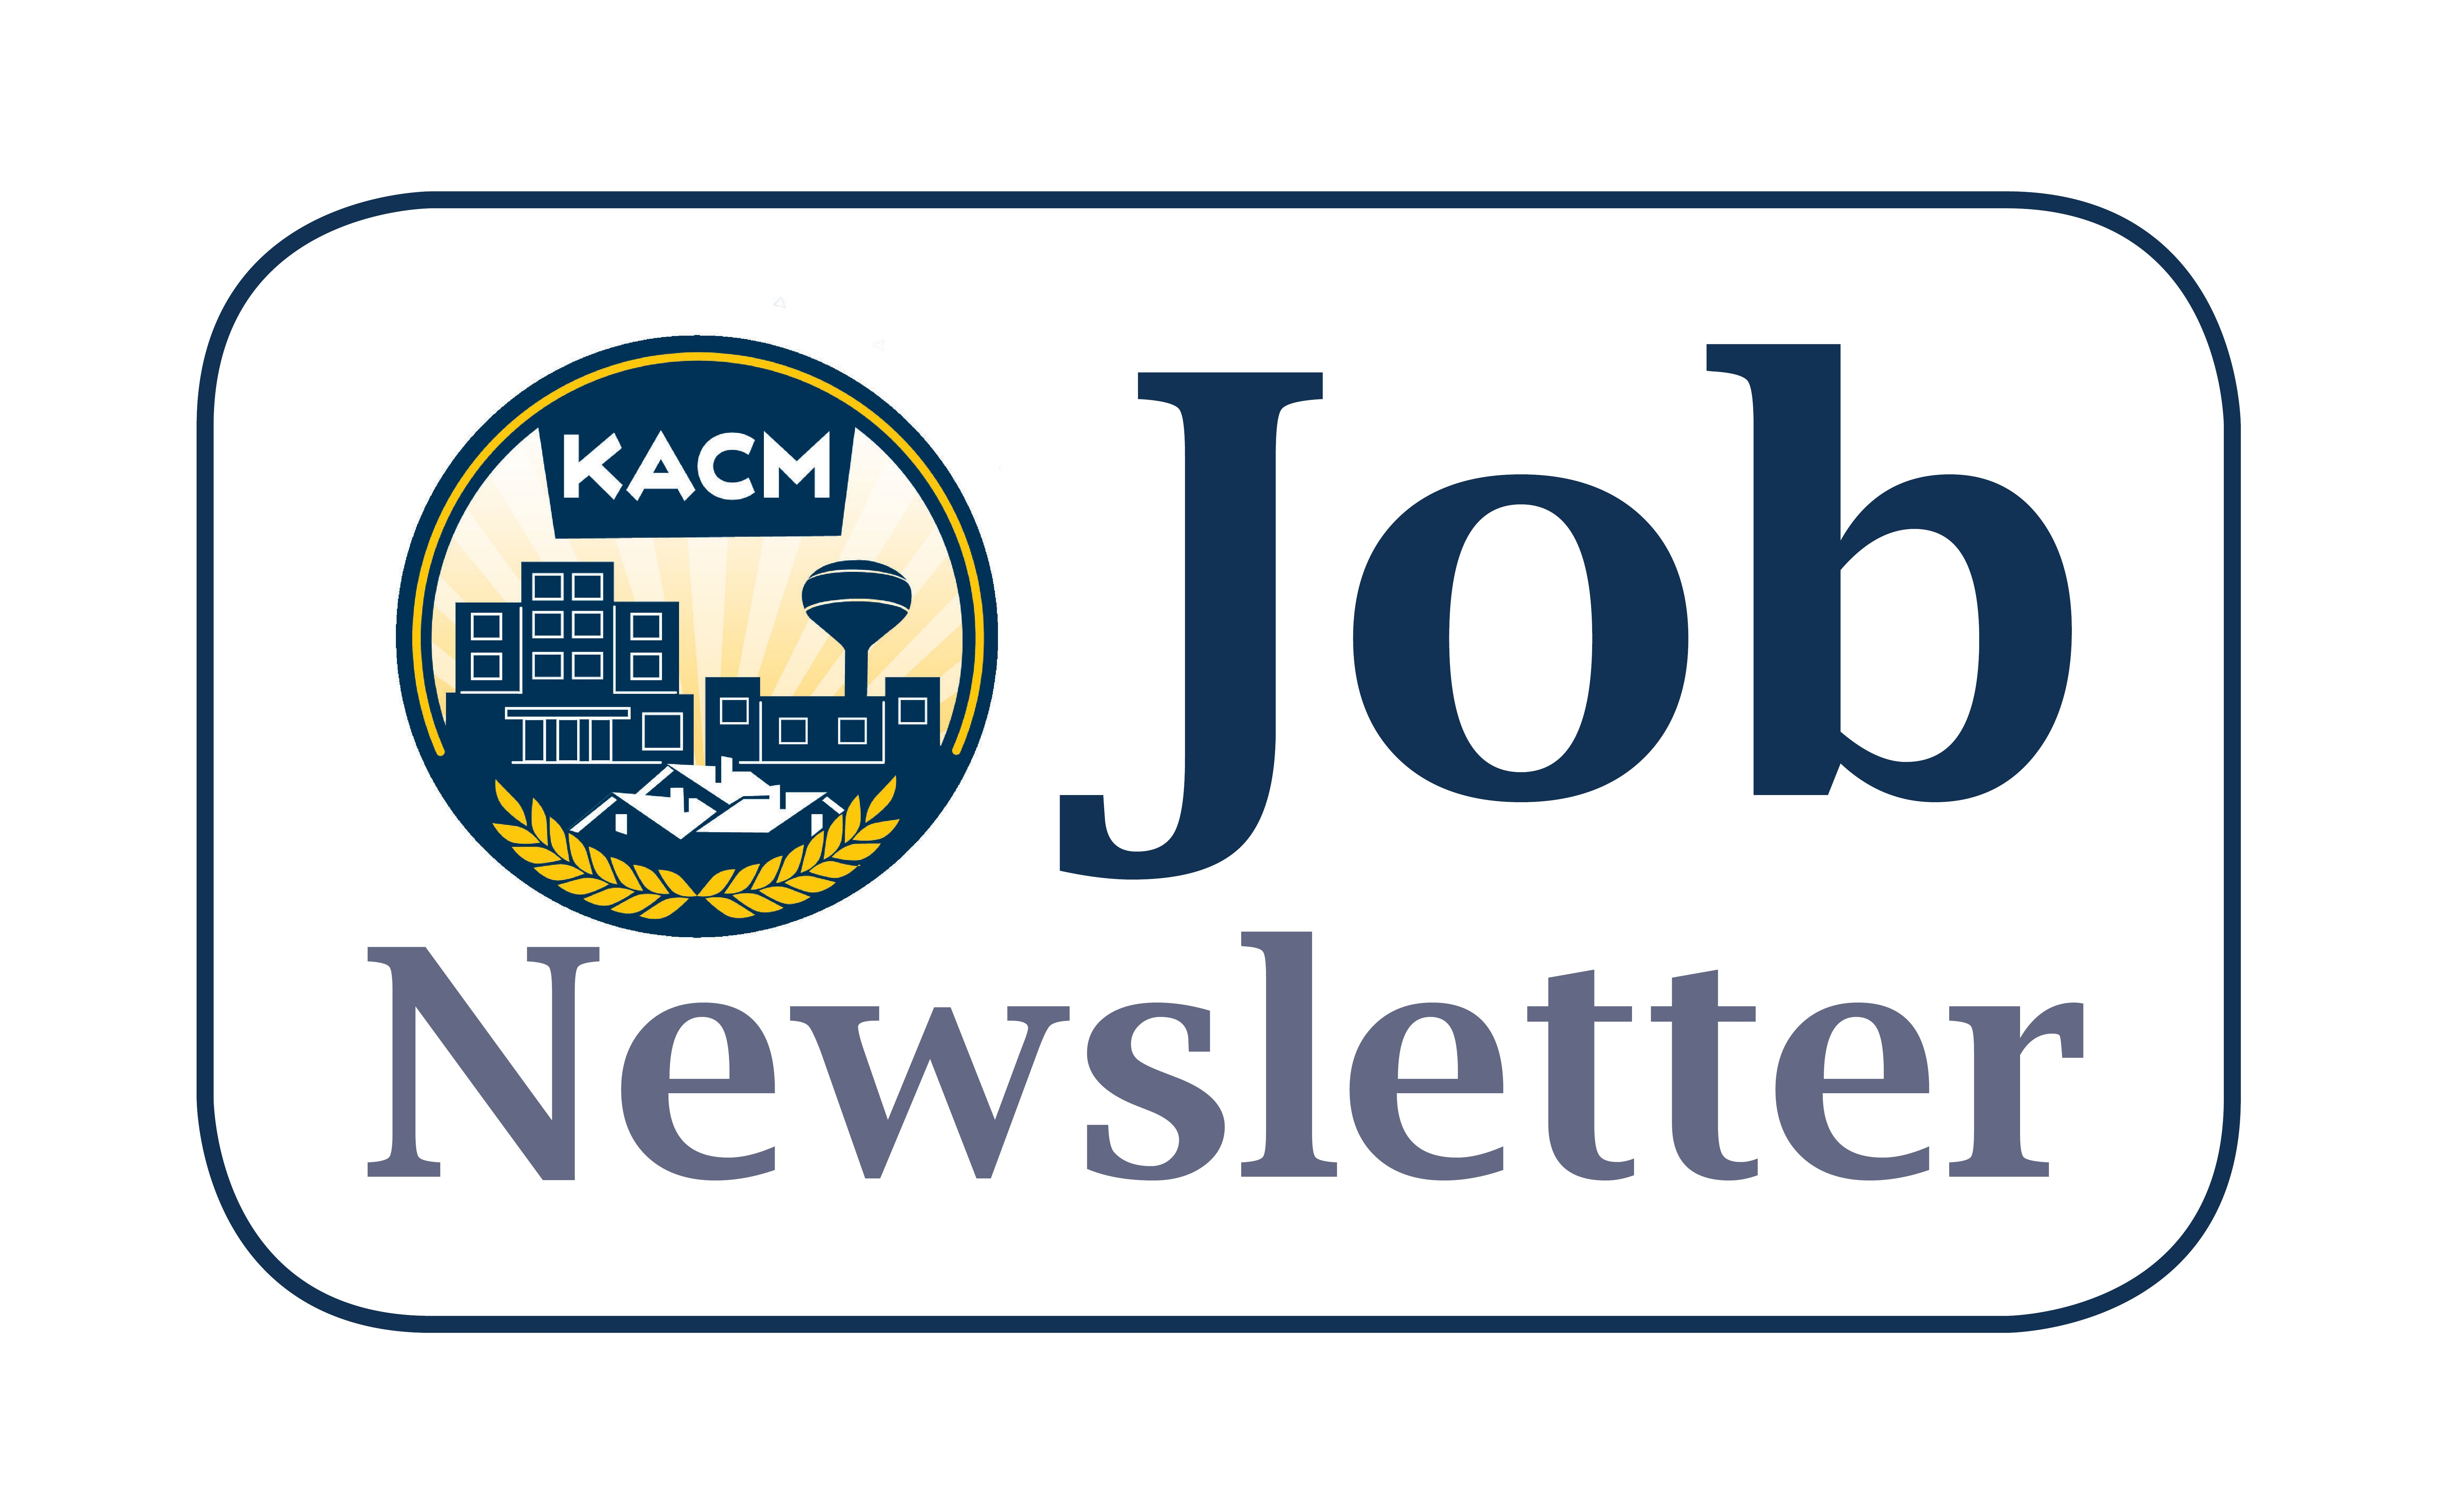 KACM Job Newsletter